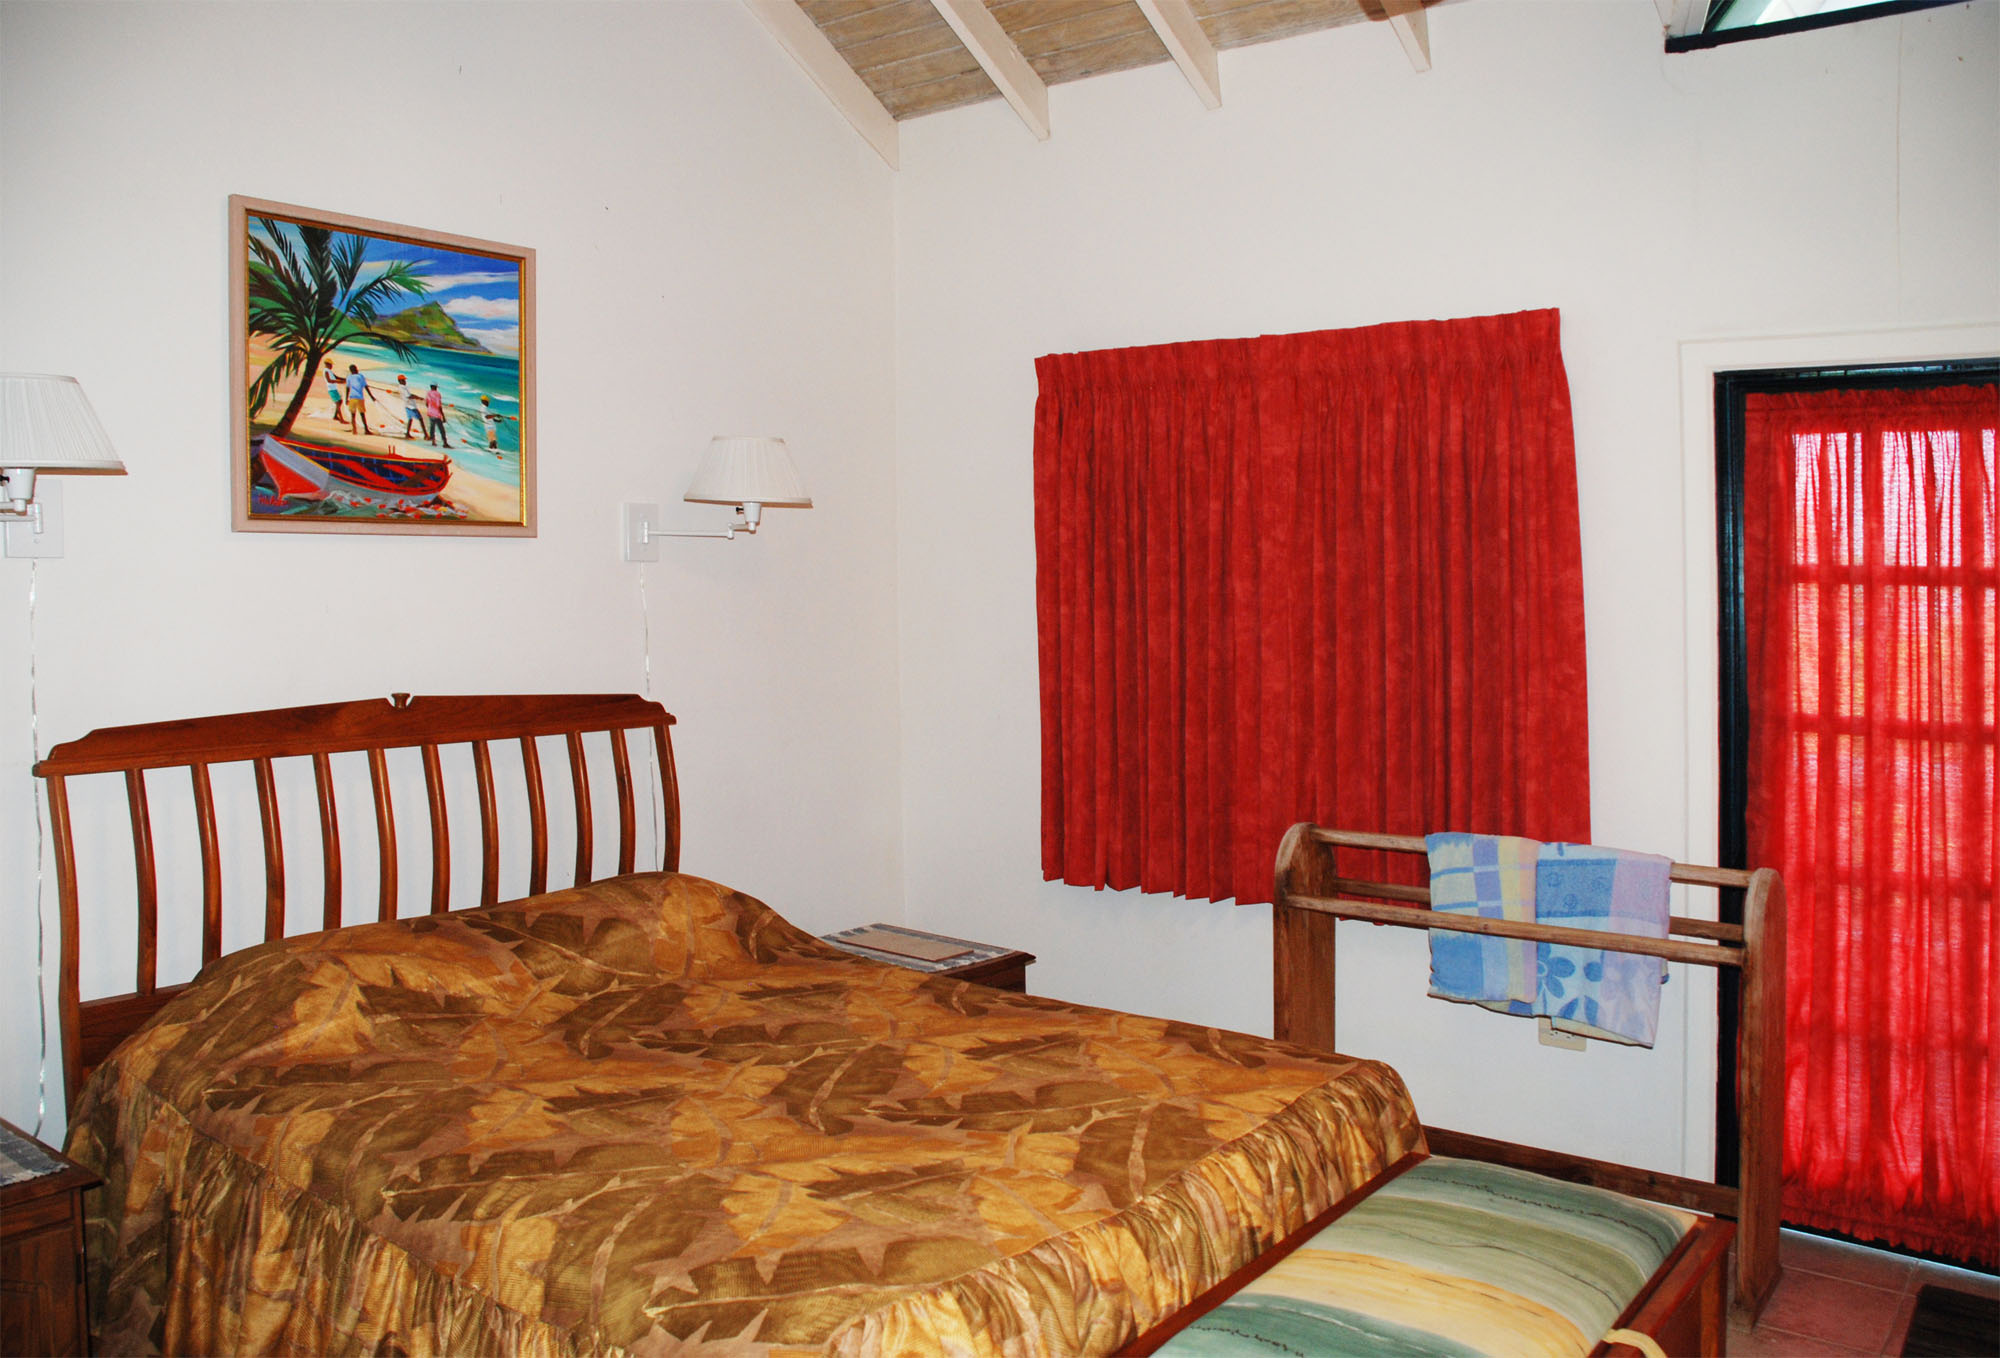 SOL Y MAR VILLA, TOBAGO W.I. Same bedroom, queen bed with two reading lamps above (typical), door to patio